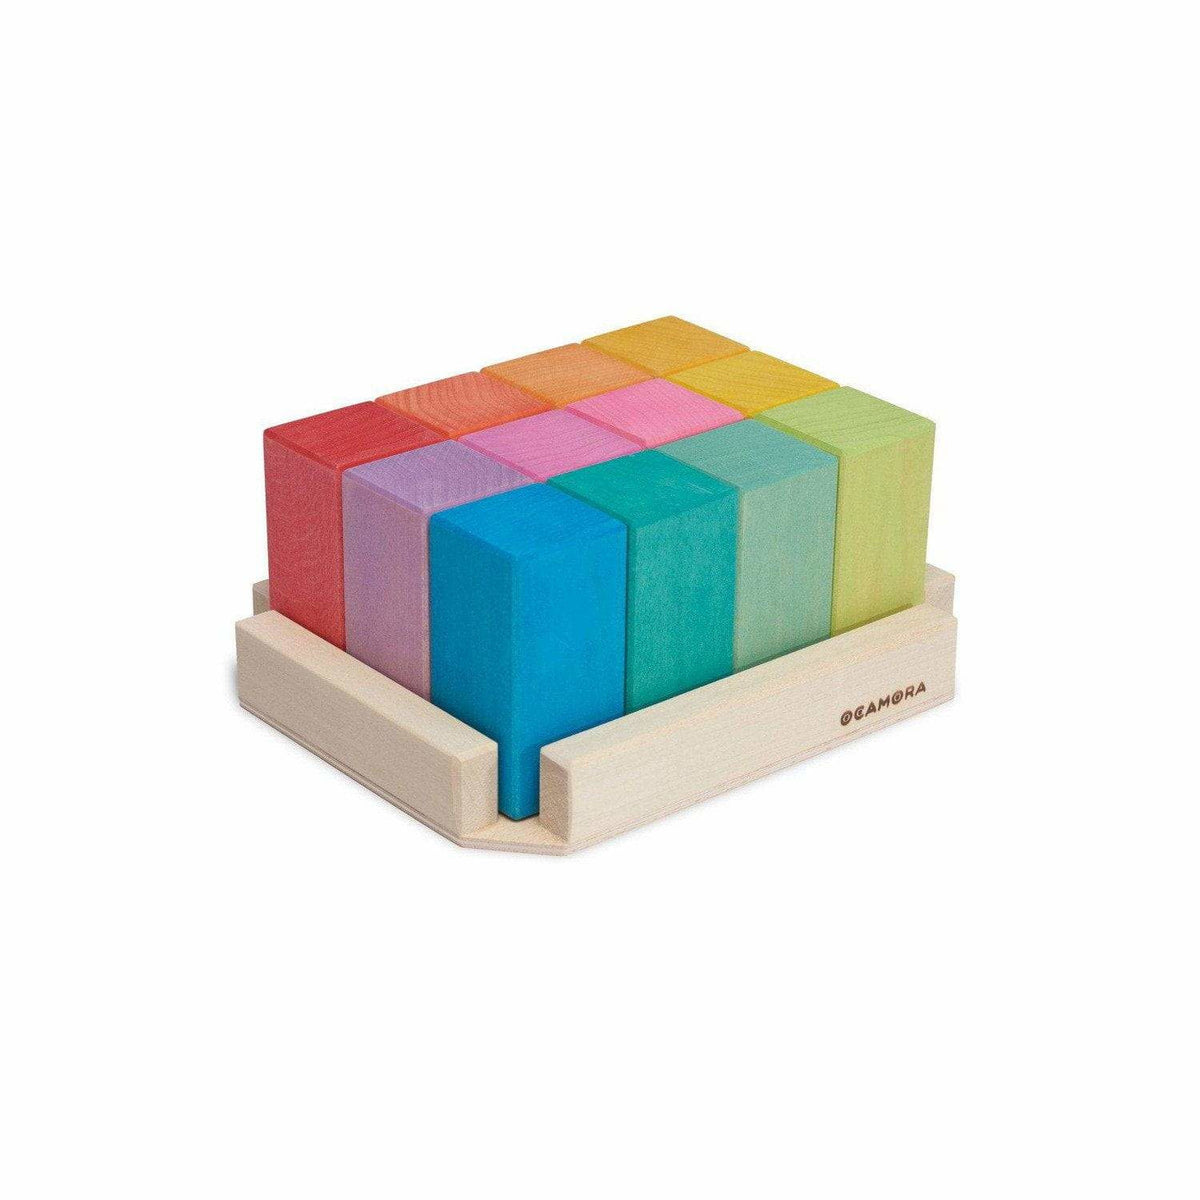 Ocamora Prisms Rectangular Blocks: Rainbow